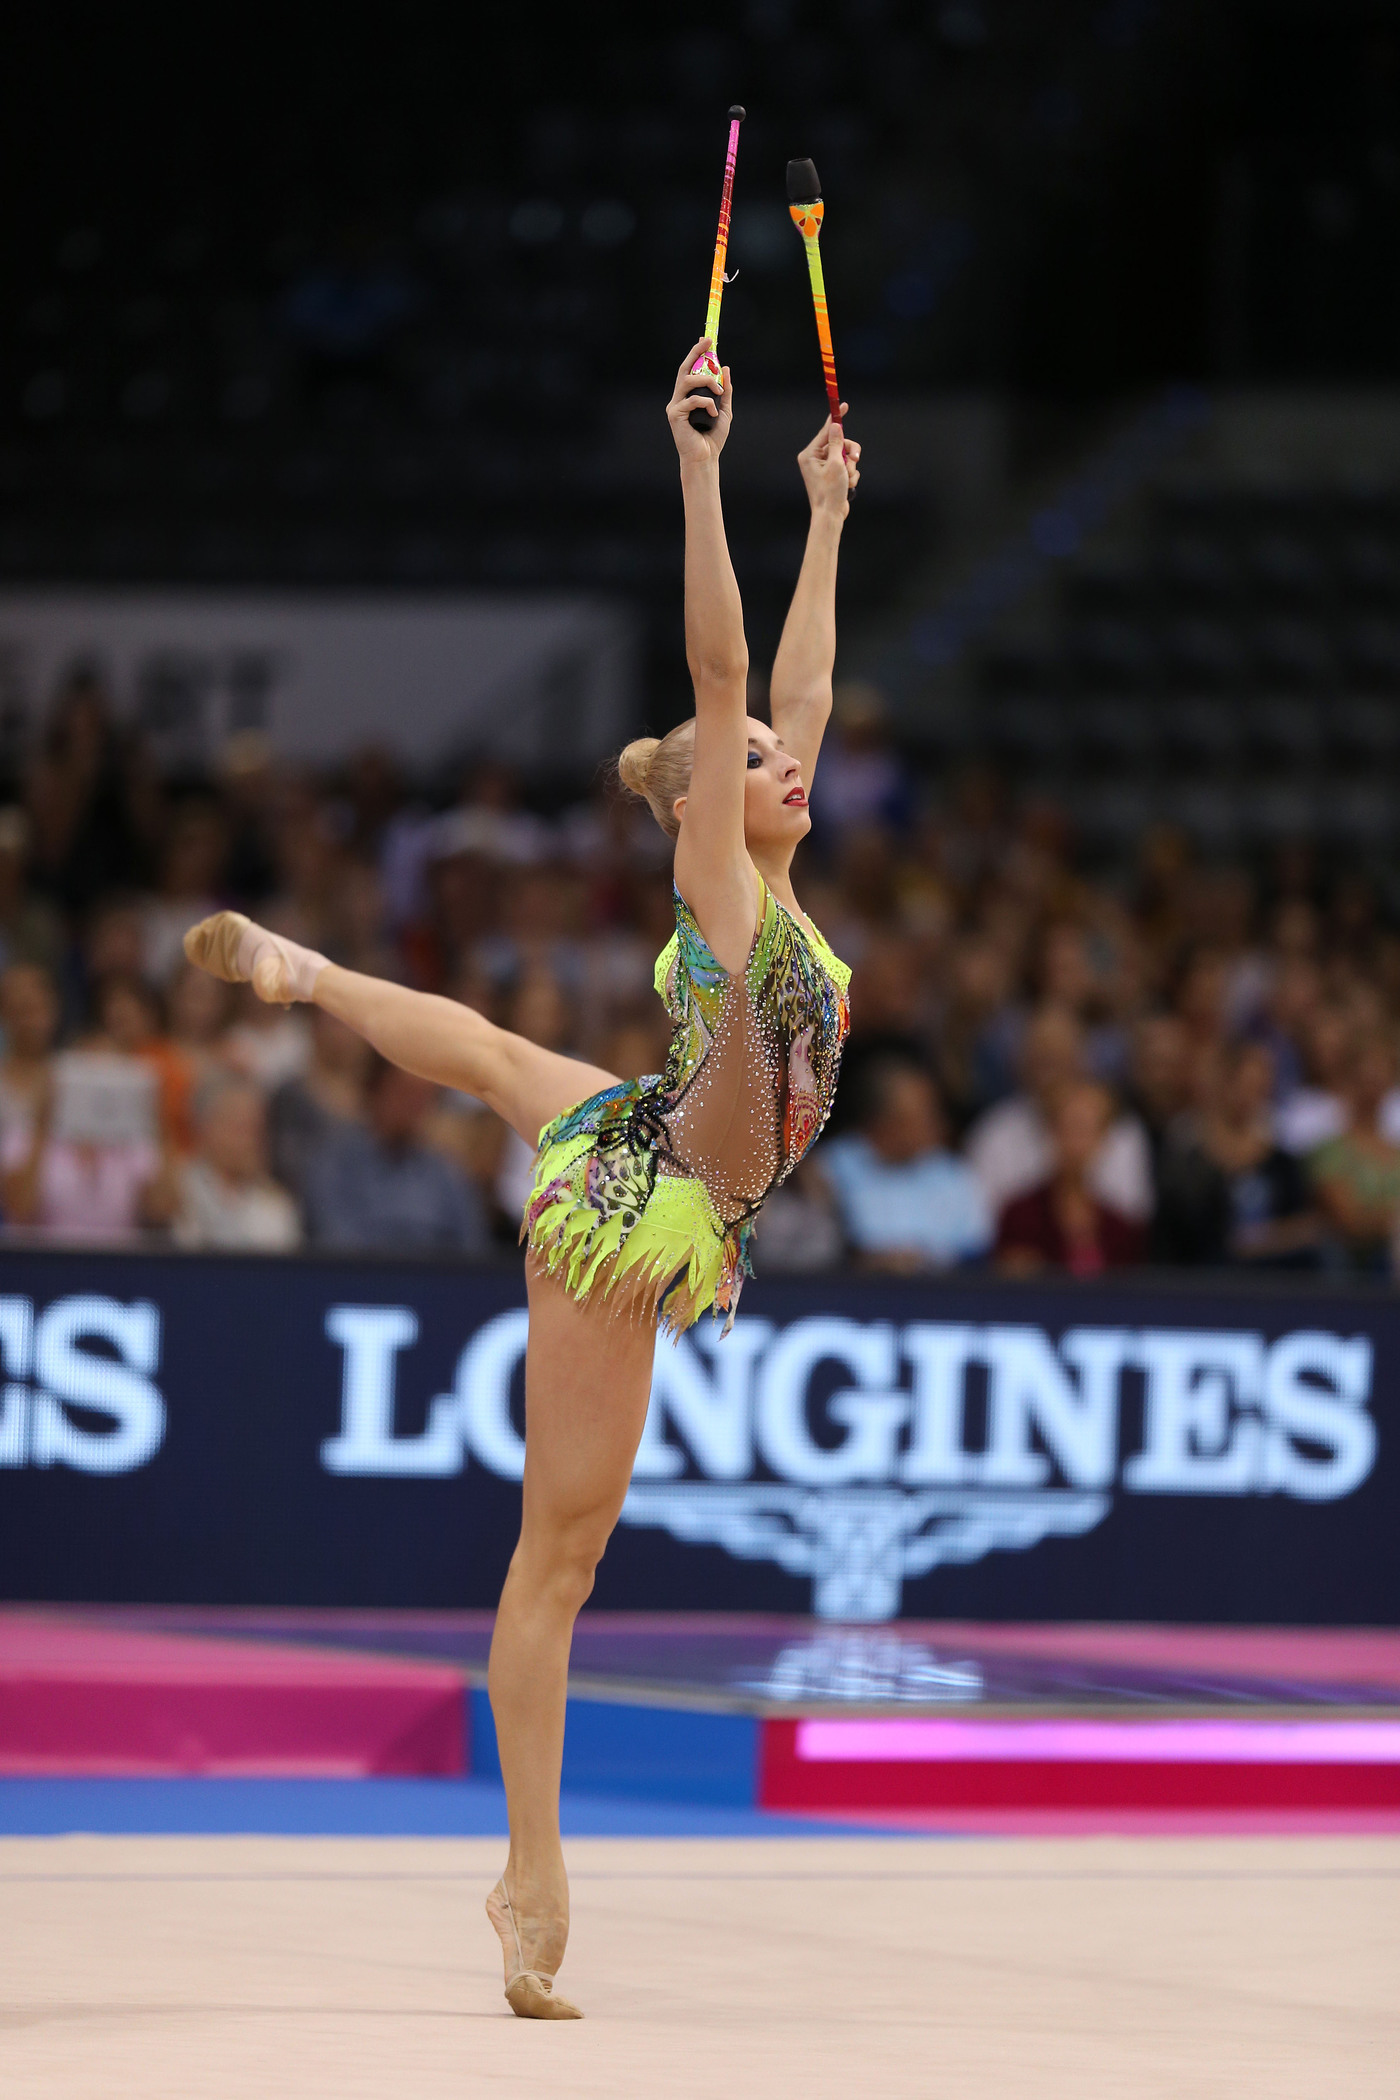 Longines Gymnastics Event: Margarita Mamun awarded with the Longines Prize for Elegance at the 34th Rhythmic Gymnastics World Championships 2015 7